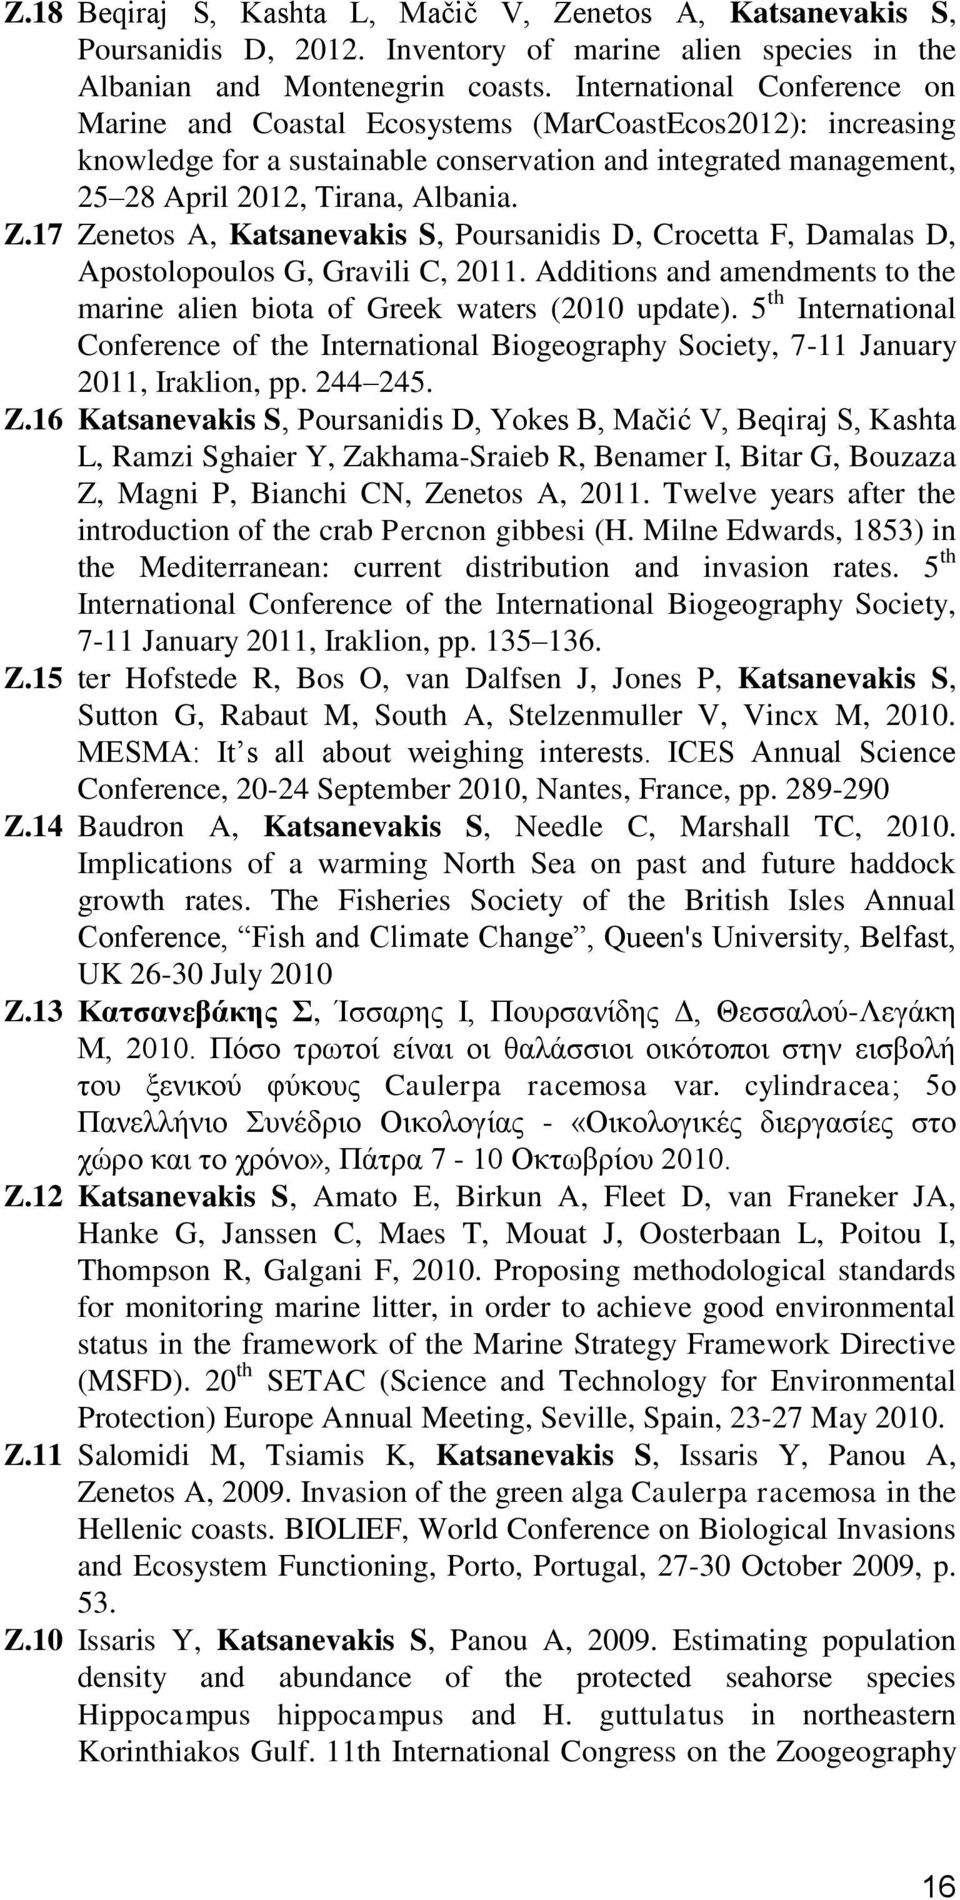 17 Zenetos A, Katsanevakis S, Poursanidis D, Crocetta F, Damalas D, Apostolopoulos G, Gravili C, 2011. Additions and amendments to the marine alien biota of Greek waters (2010 update).